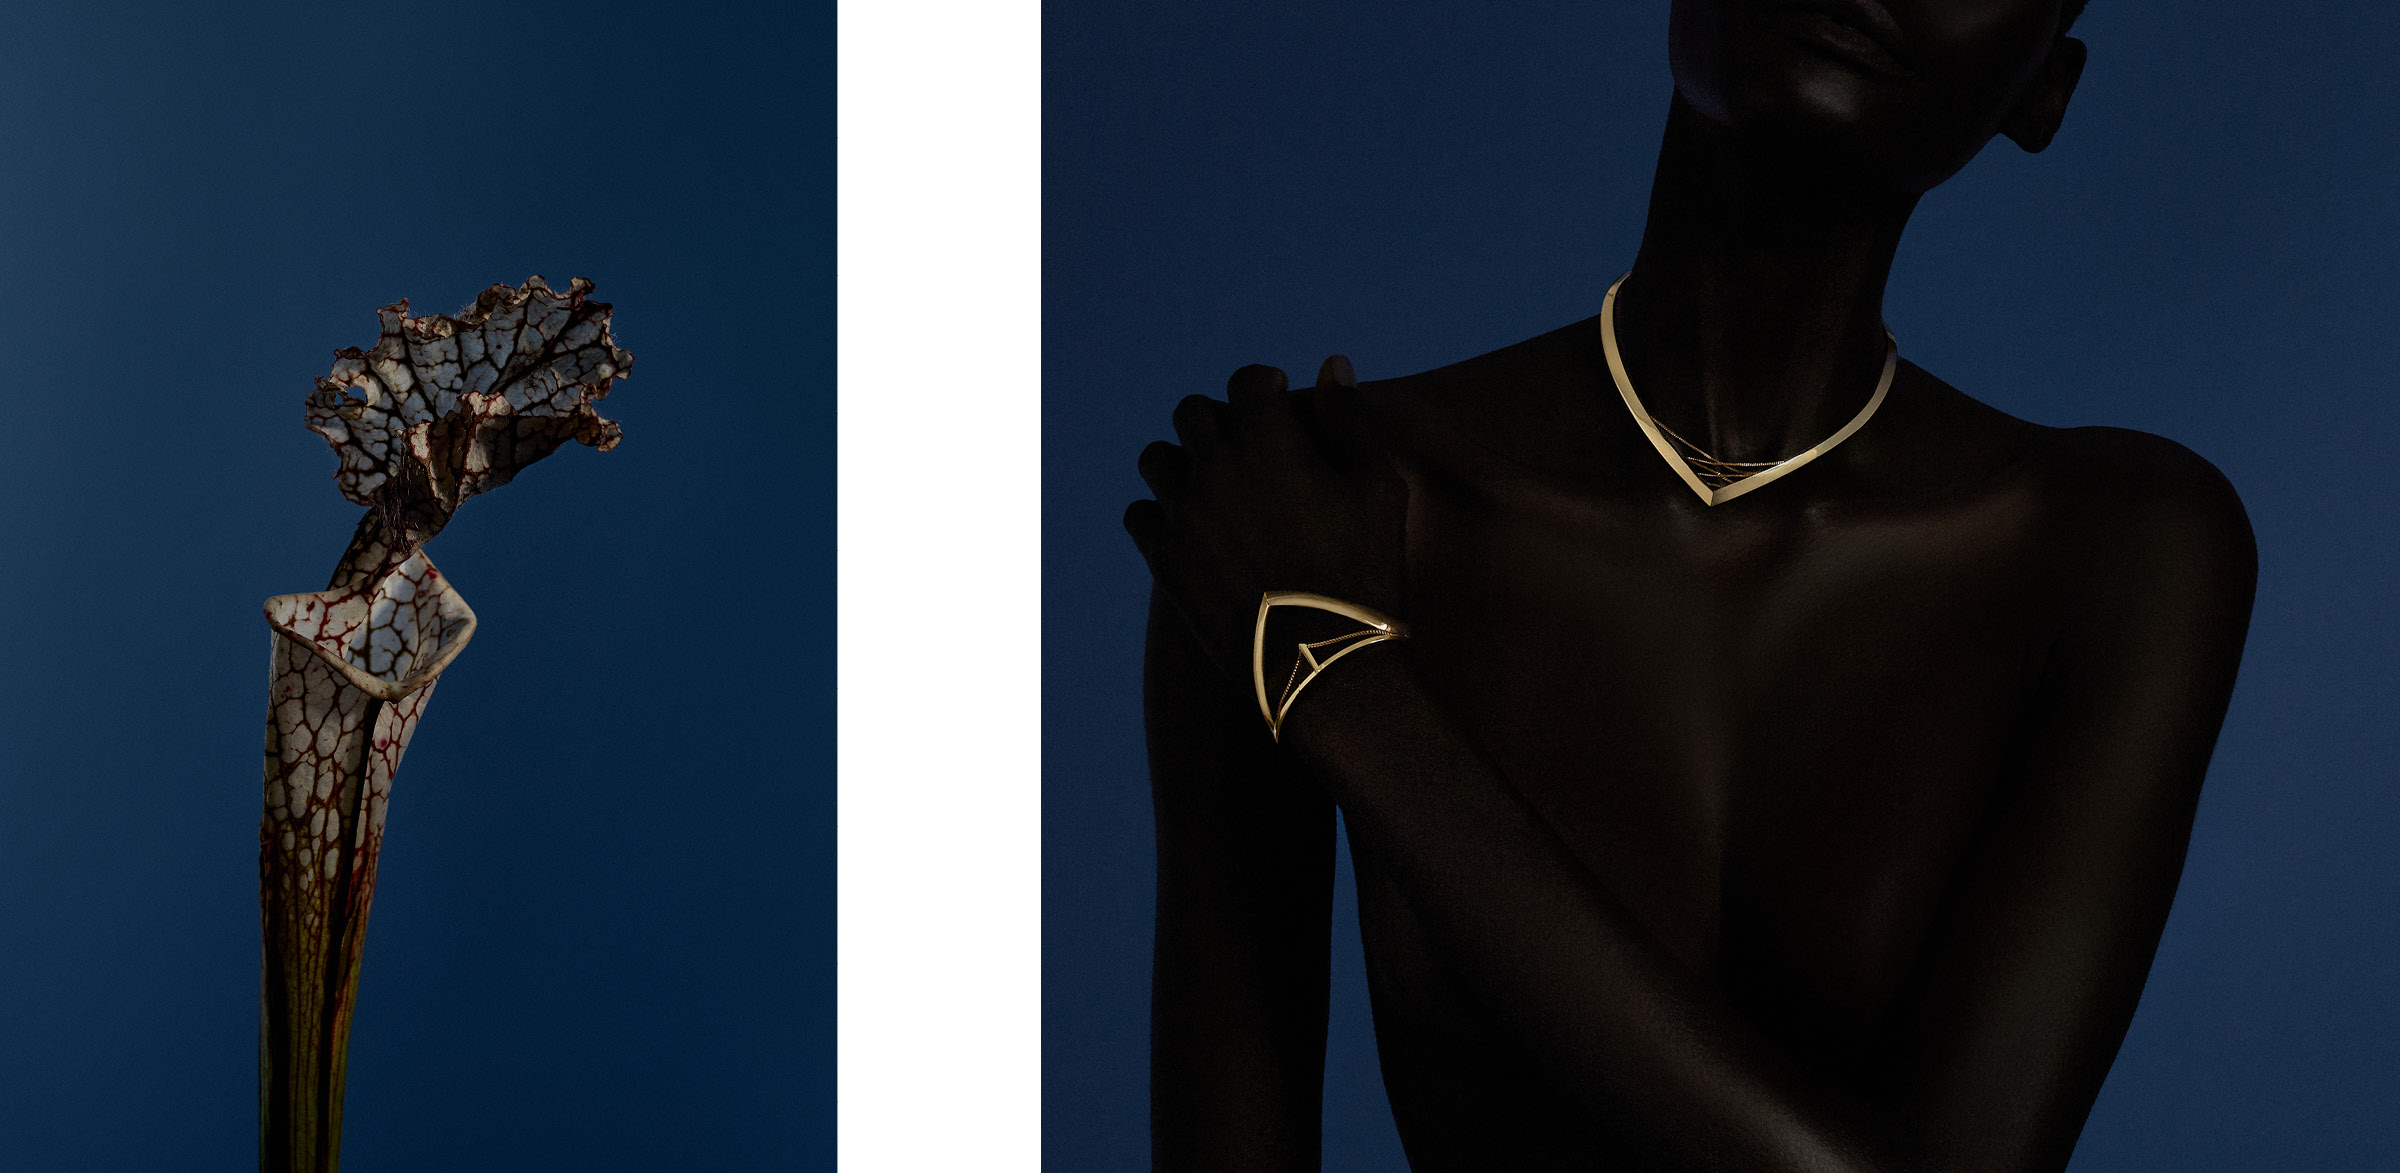 Webby Award winner jewelry still life and portrait campaign produced by DTE Studio for Bliss Lau.